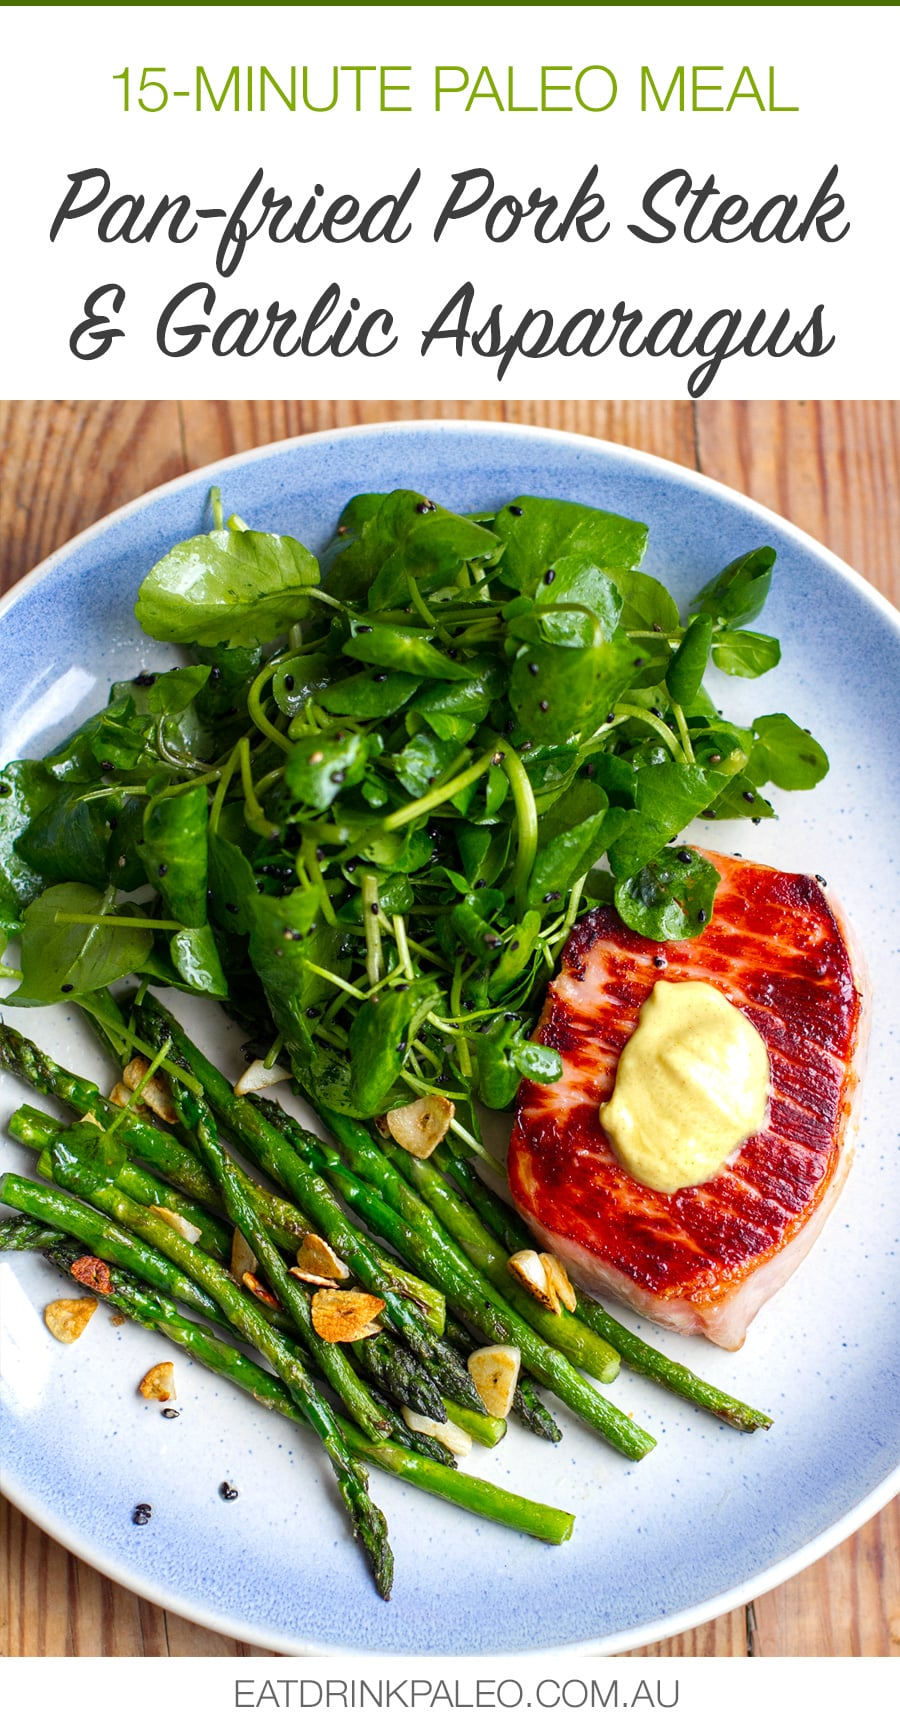 Quick & Easy Pork Steaks With Garlic Asparagus & Watercress Salad (Paleo, Whole30, Keto)